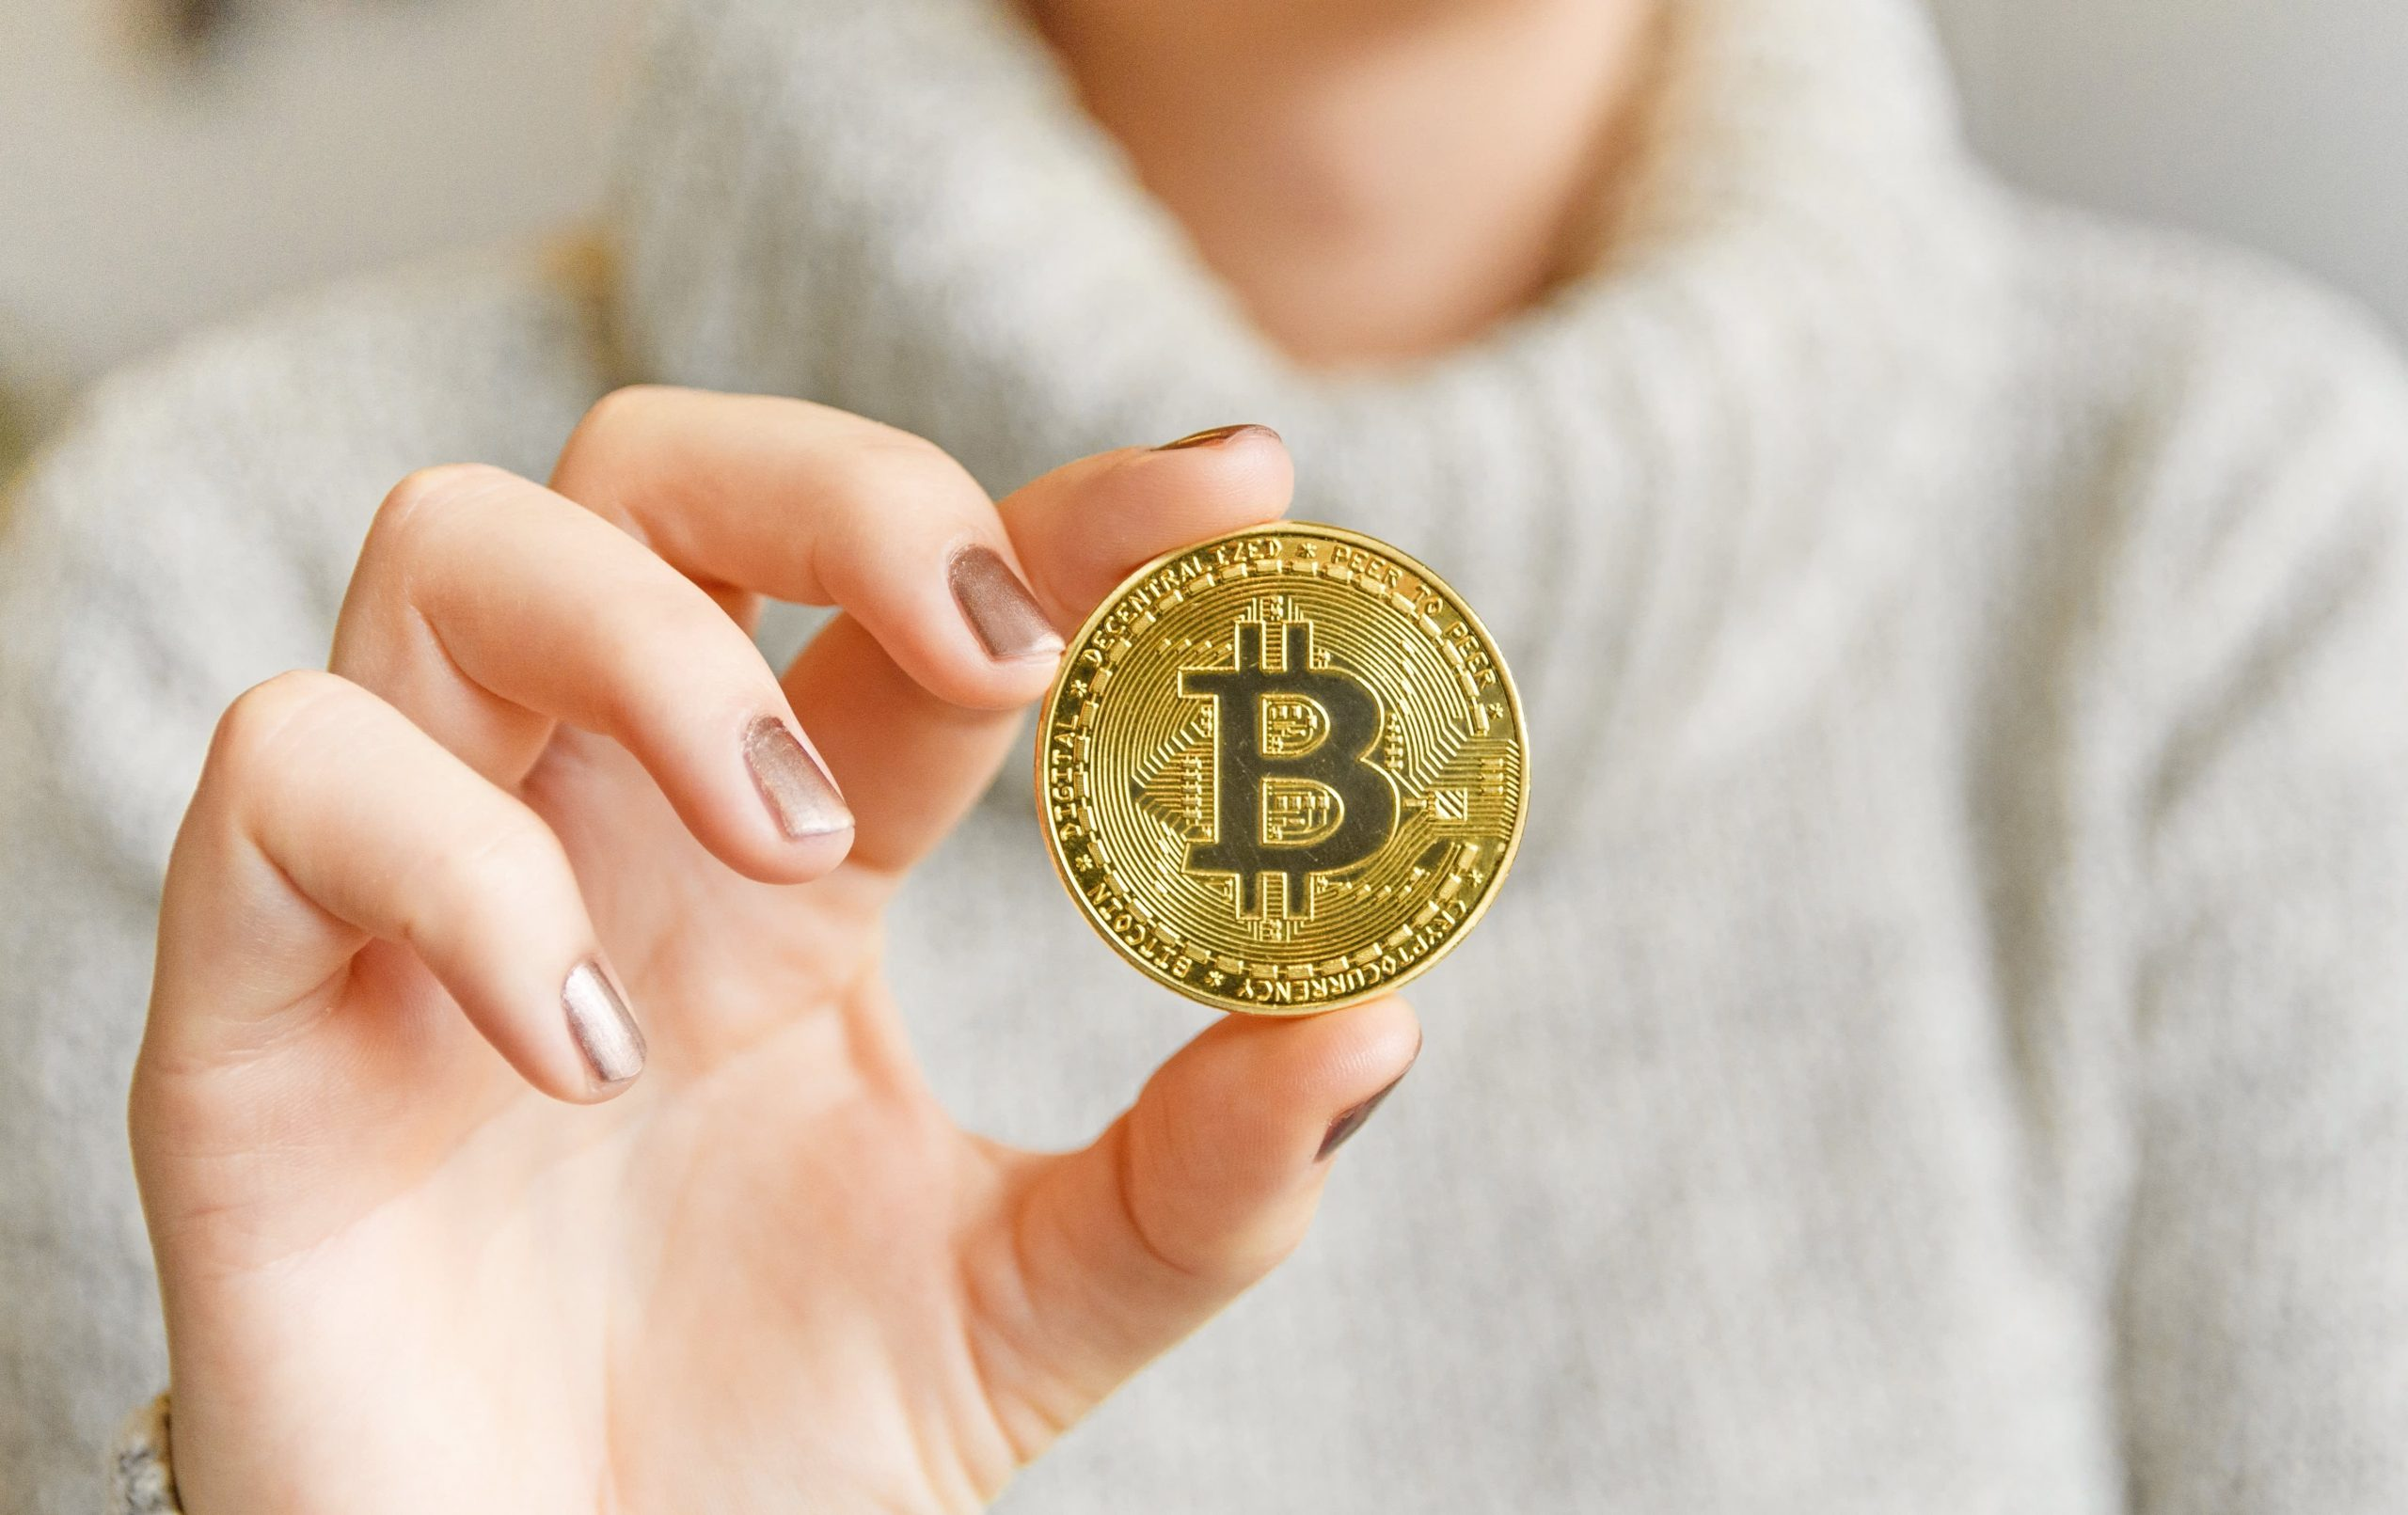 What will happen to the cryptocurrency below $30k